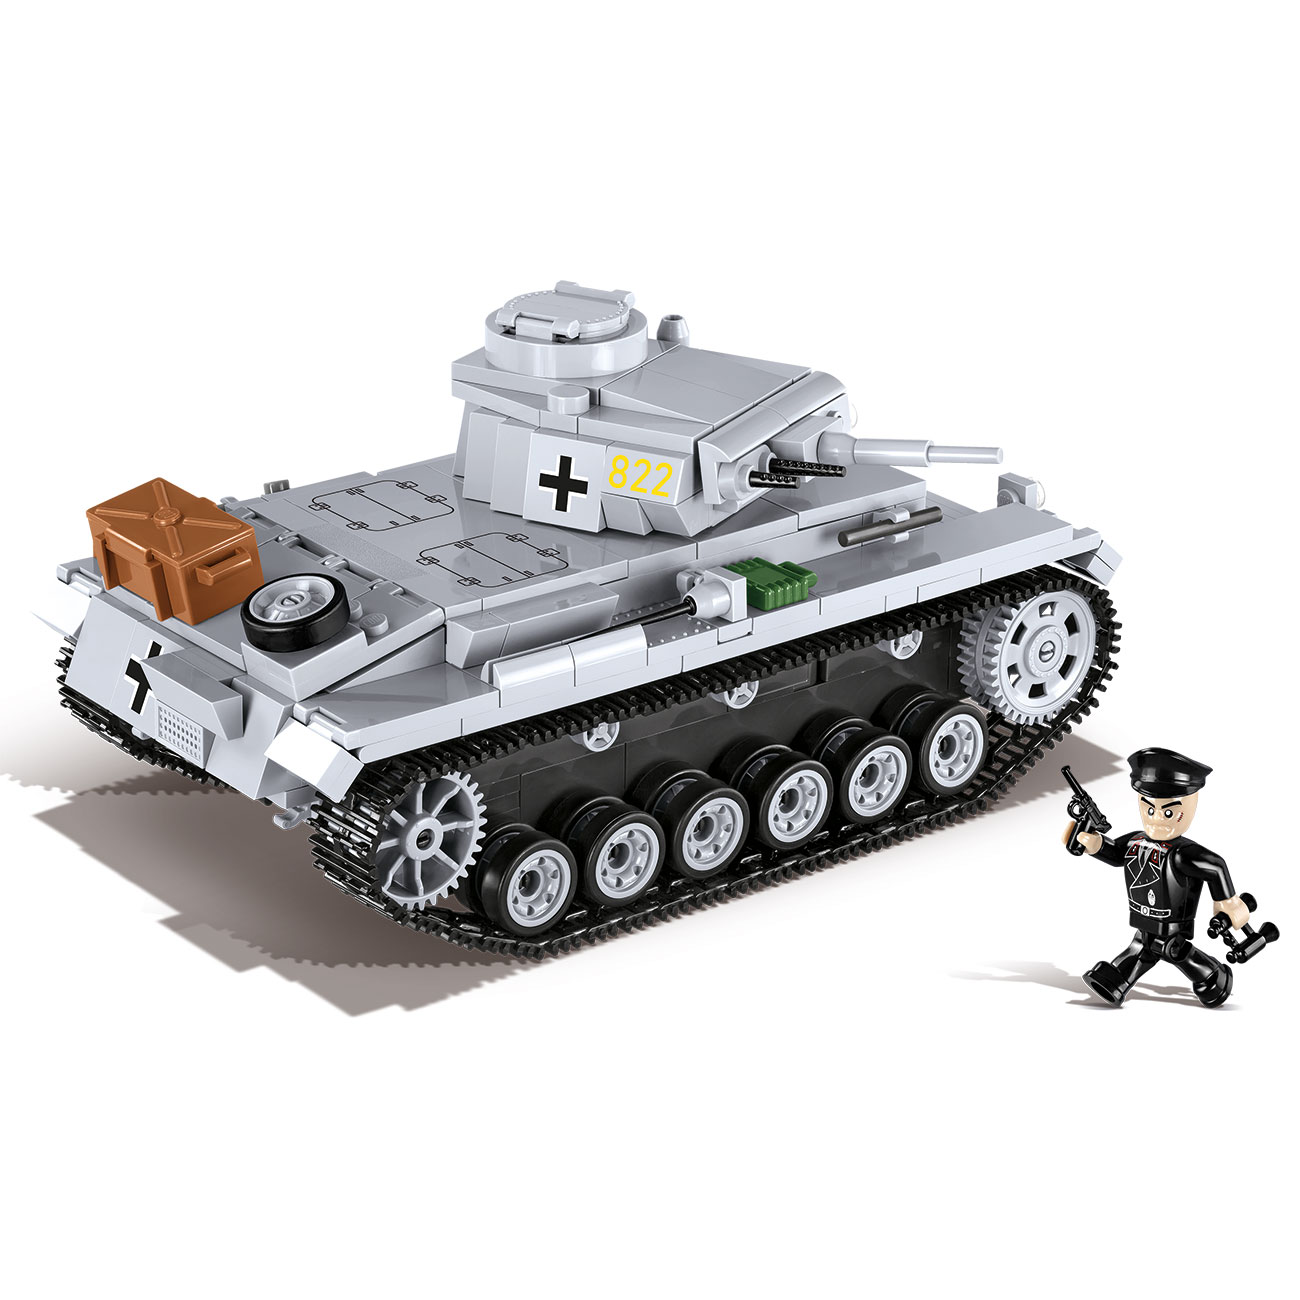 Cobi Historical Collection Bausatz Panzer III Ausf. E 470 Teile 2523 1